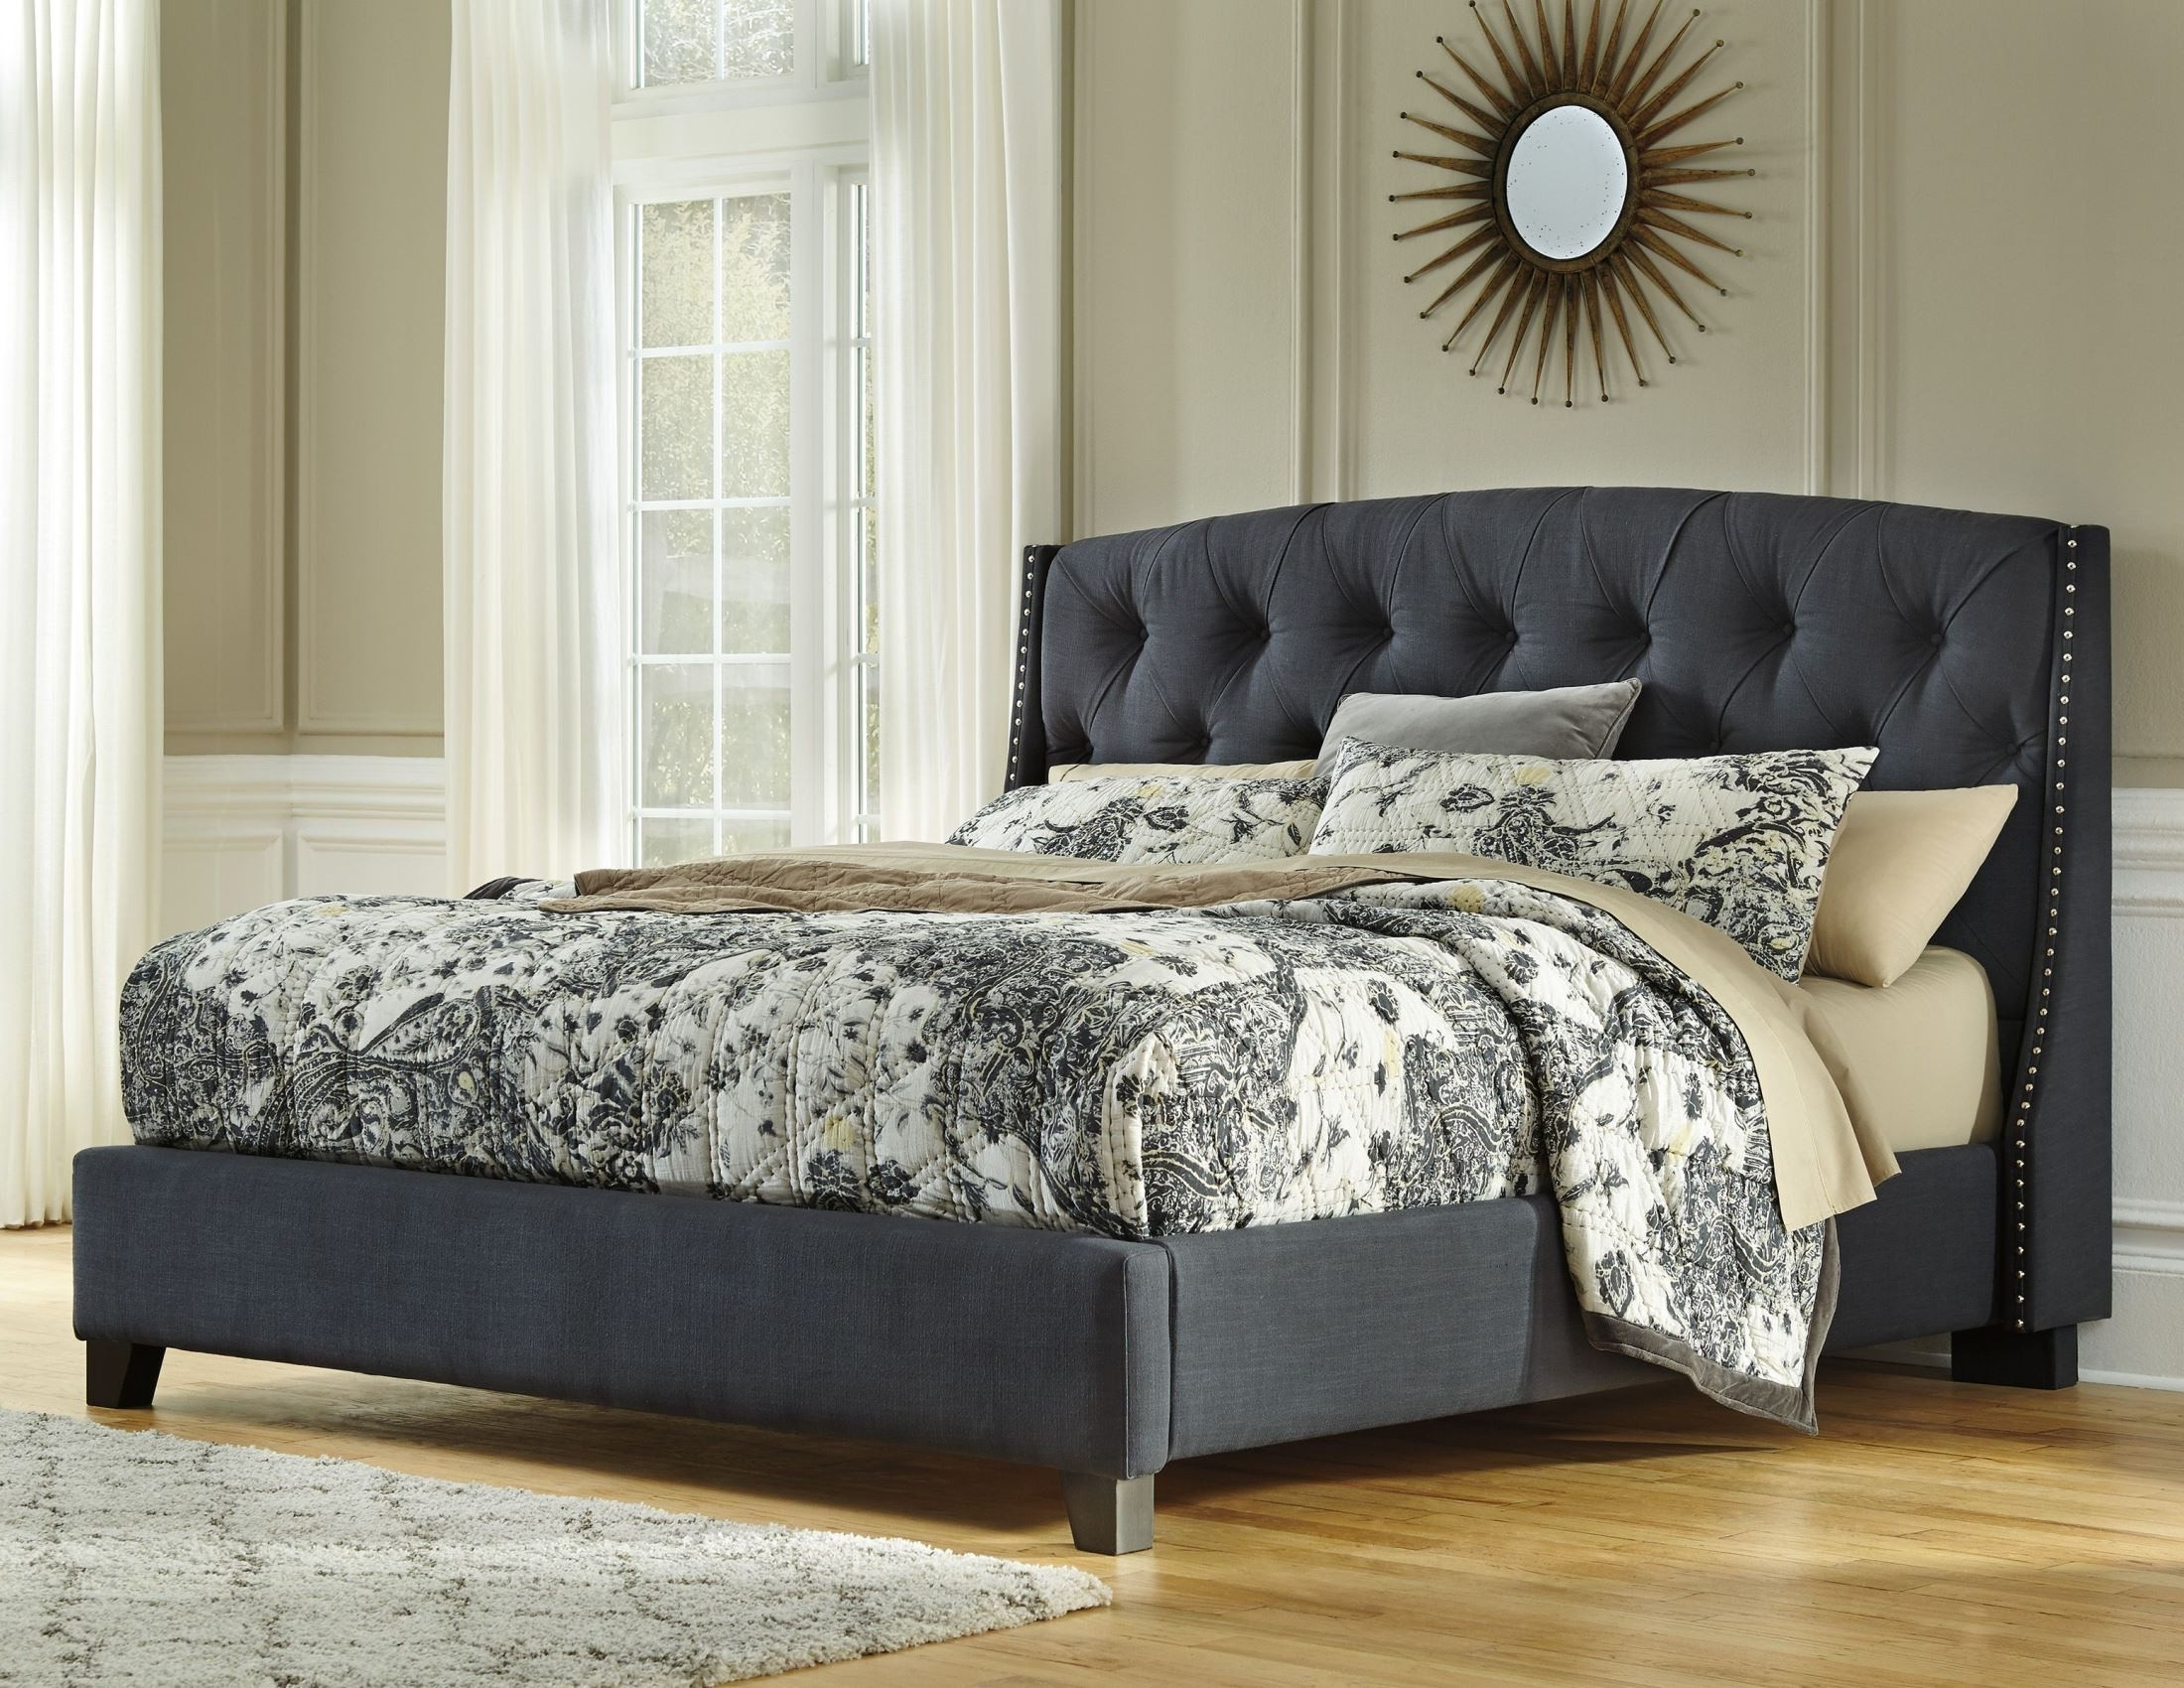 King Upholstered Platform Bed From Ashley (B600-558-556-597 for Current Ashley Tufted Sofas